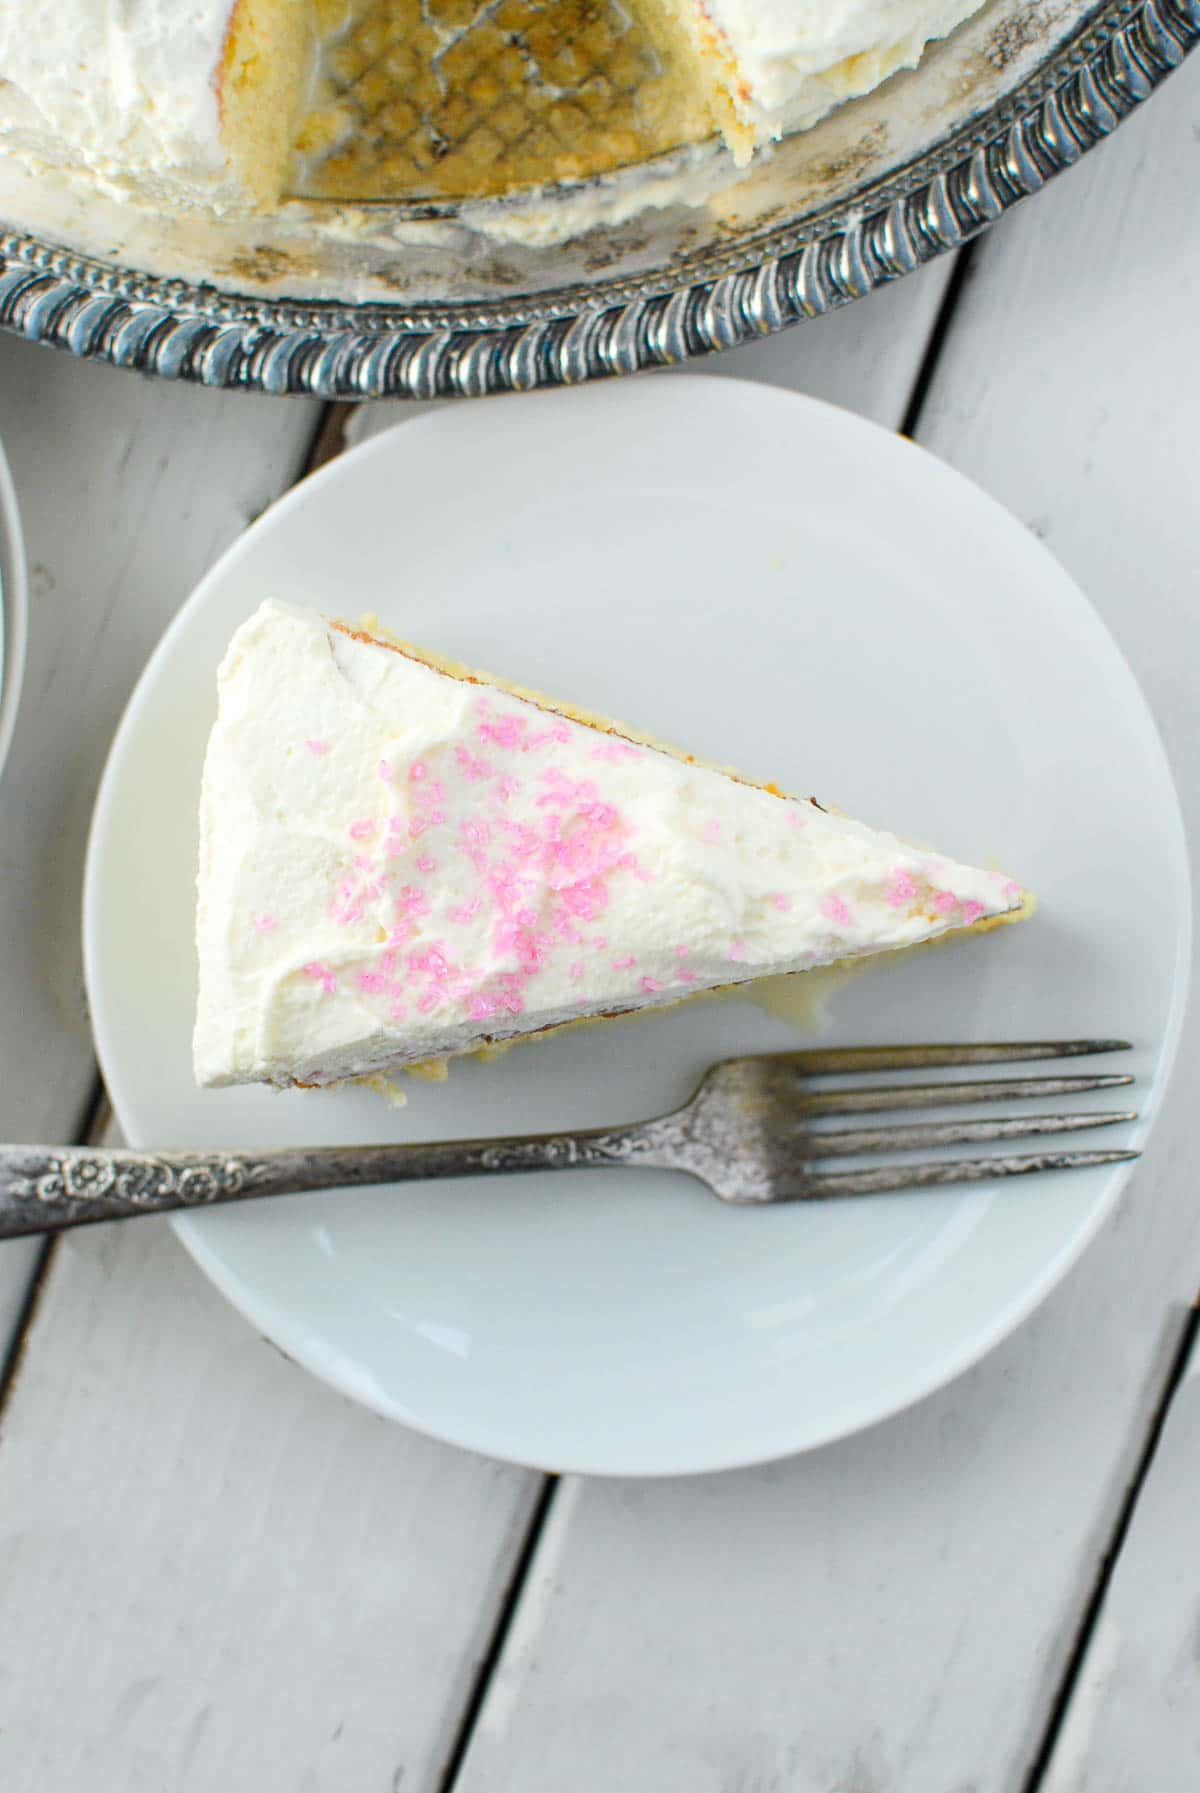 tres leches cake slice from above